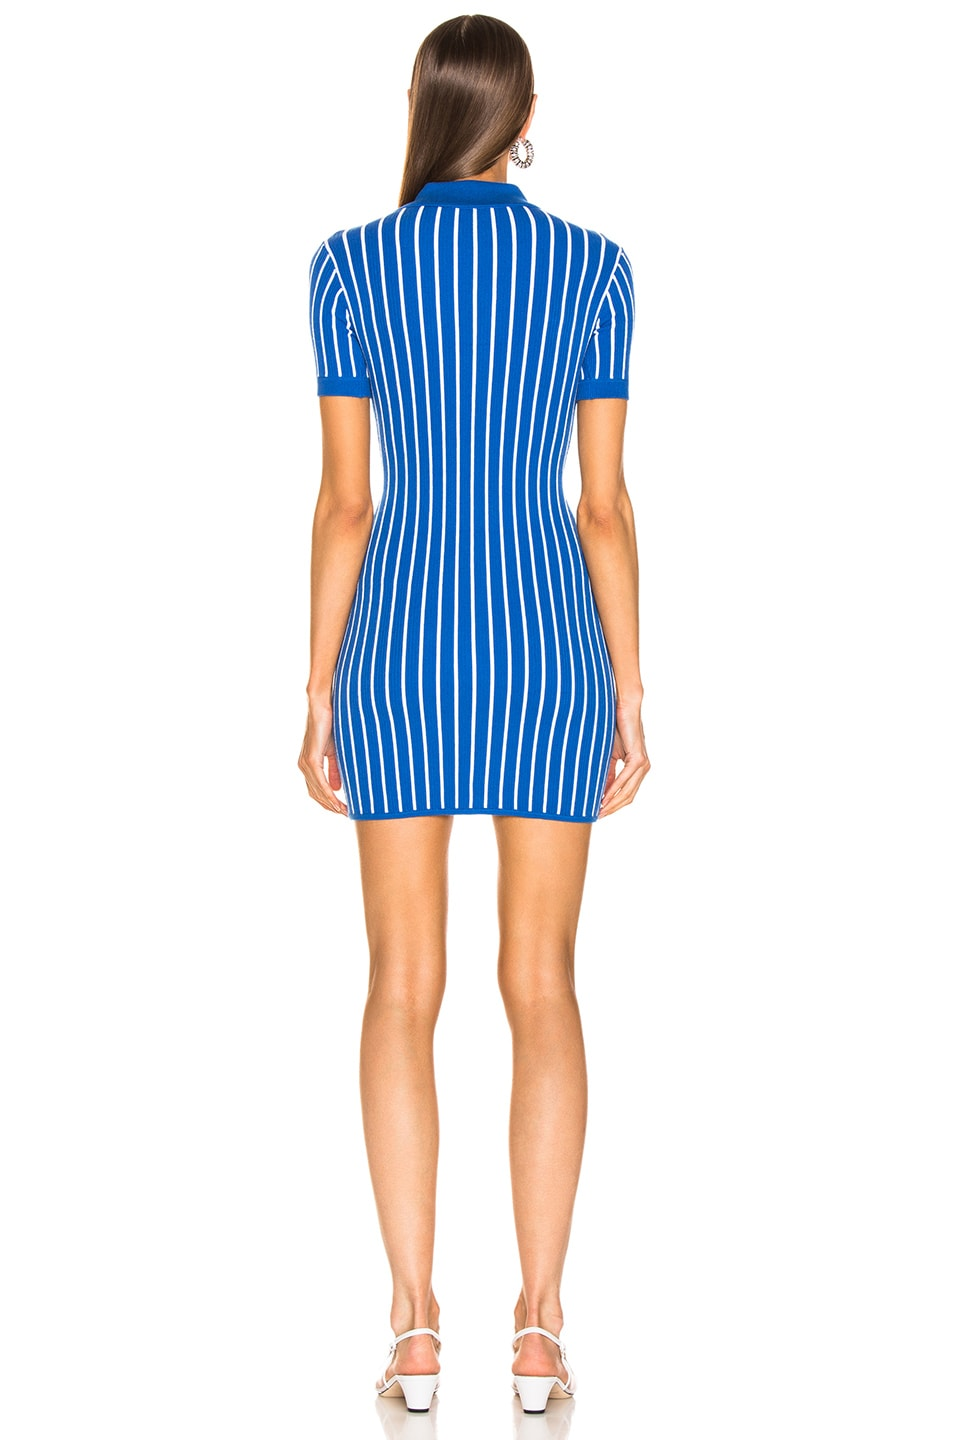 Image 3 of JoosTricot Polo Dress in Blue & White